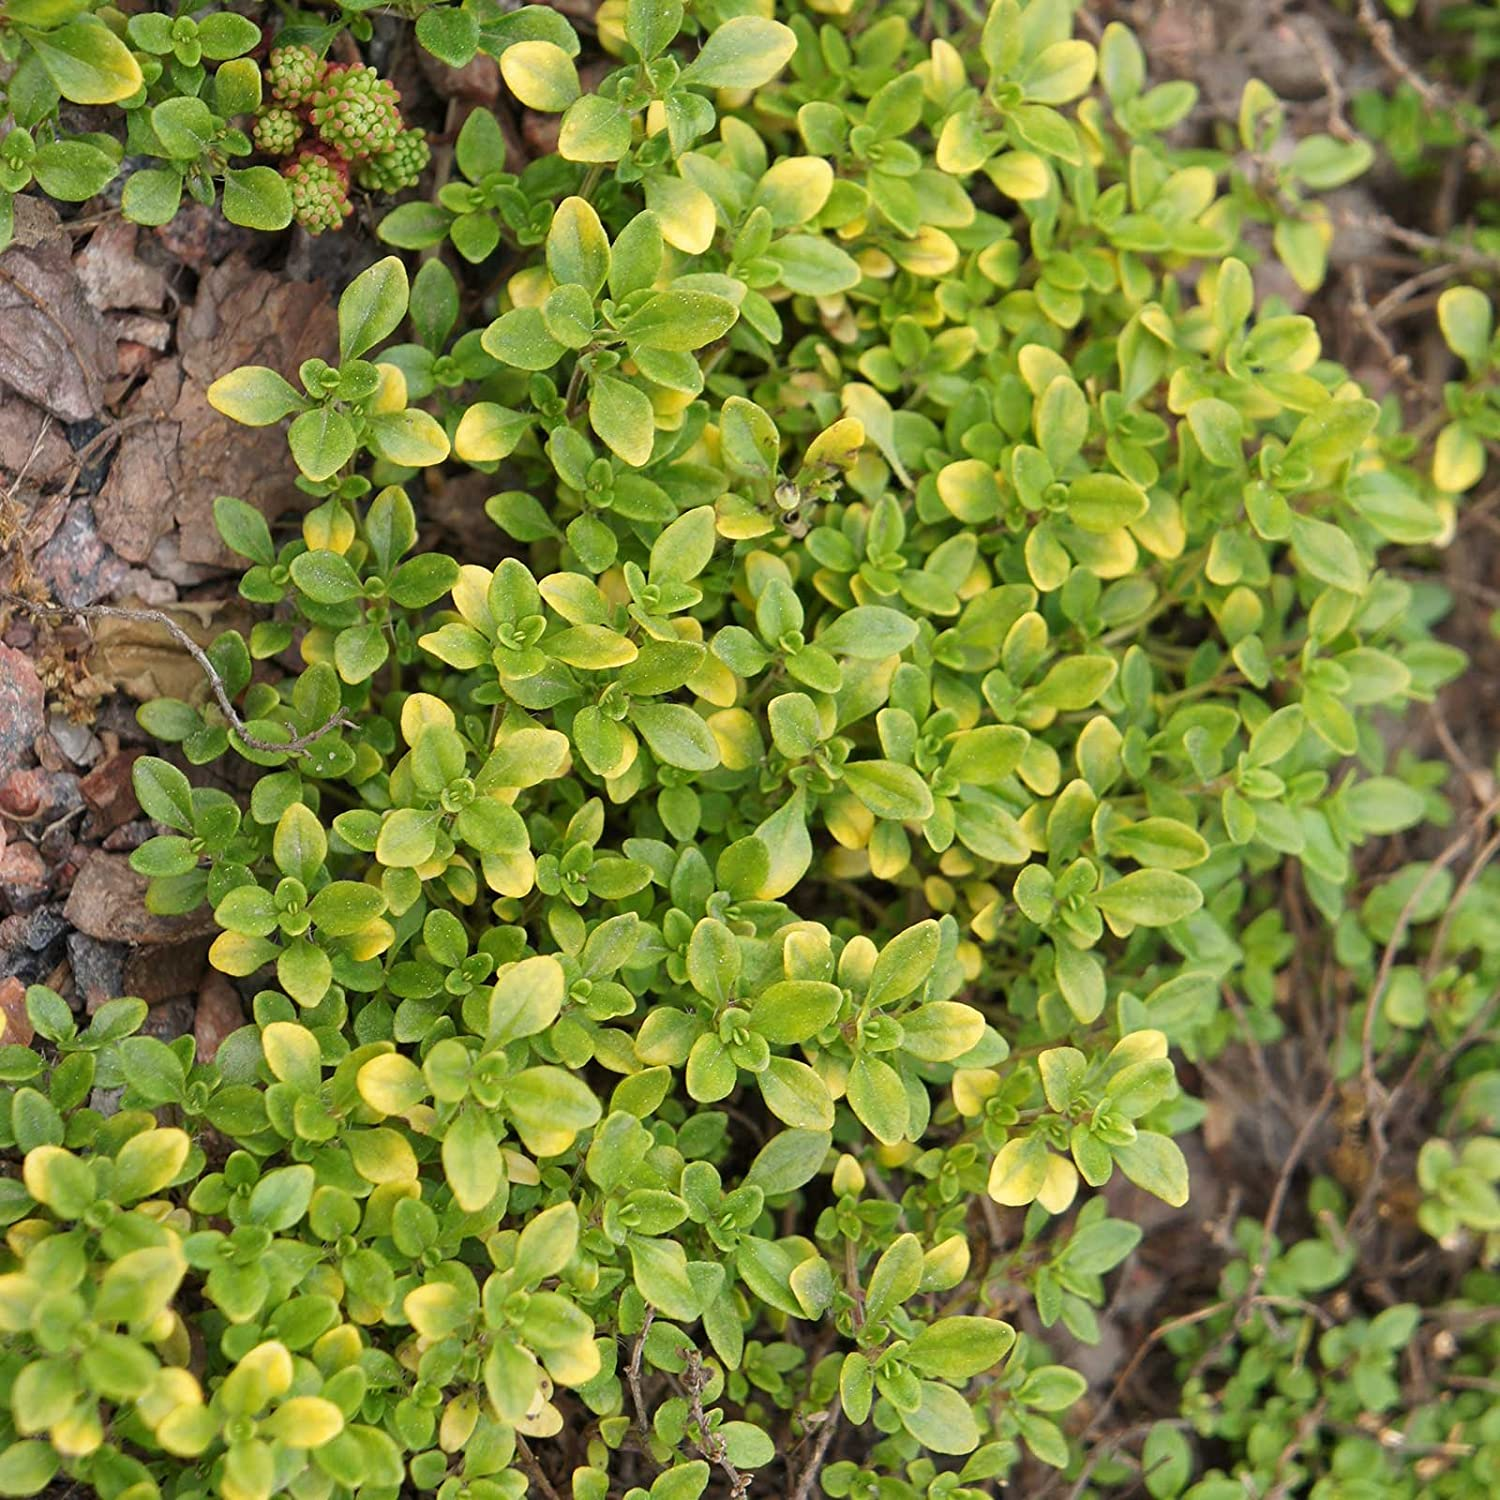 Garden Thyme 250 mg ~1,000 Seeds - Non-GMO, Open Pollinated, Heirloom - Culinary Herb Gardening Seeds